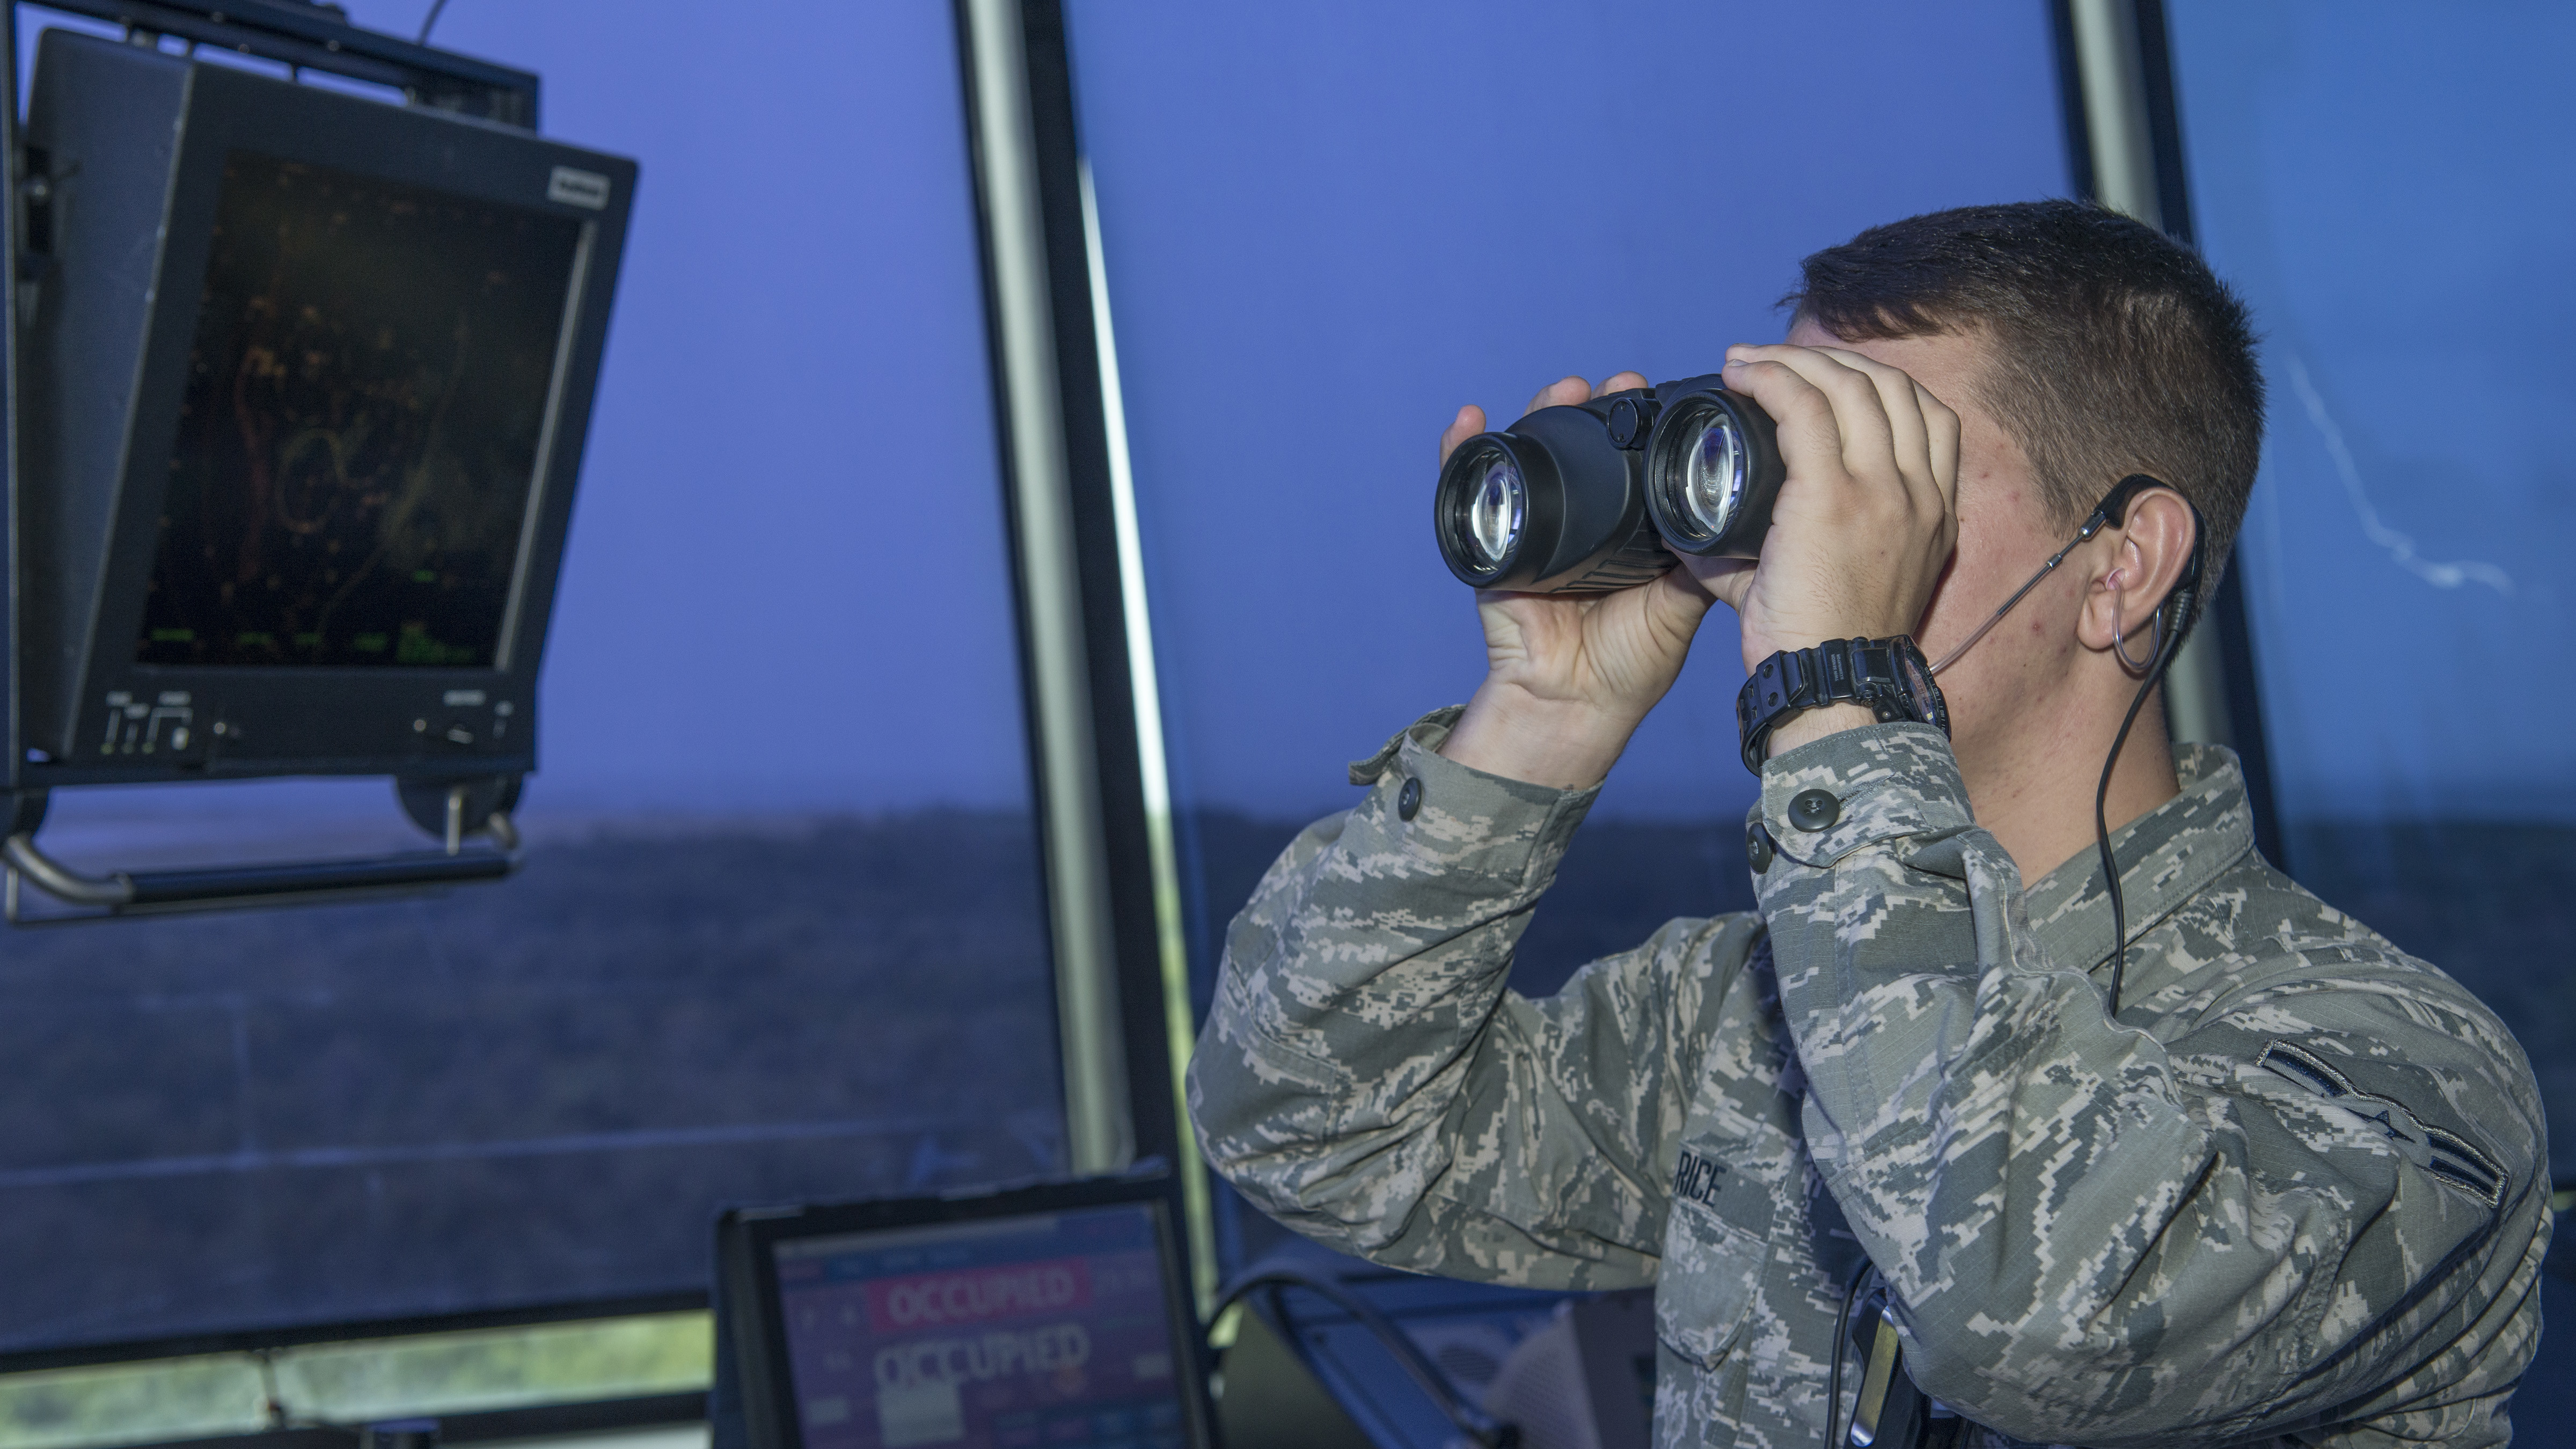 Airman 1st Class Samson Rice, a 6th Operations Support Squadron air traffic control apprentice, checks for incoming aircraft at MacDill Air Force Base, Fla., Oct. 9, 2019. Air traffic controllers track aircraft while communicating with pilots to ensure successful aircraft launch and recovery. (U.S. Air Force photo by Airman 1st Class Ryan C. Grossklag)